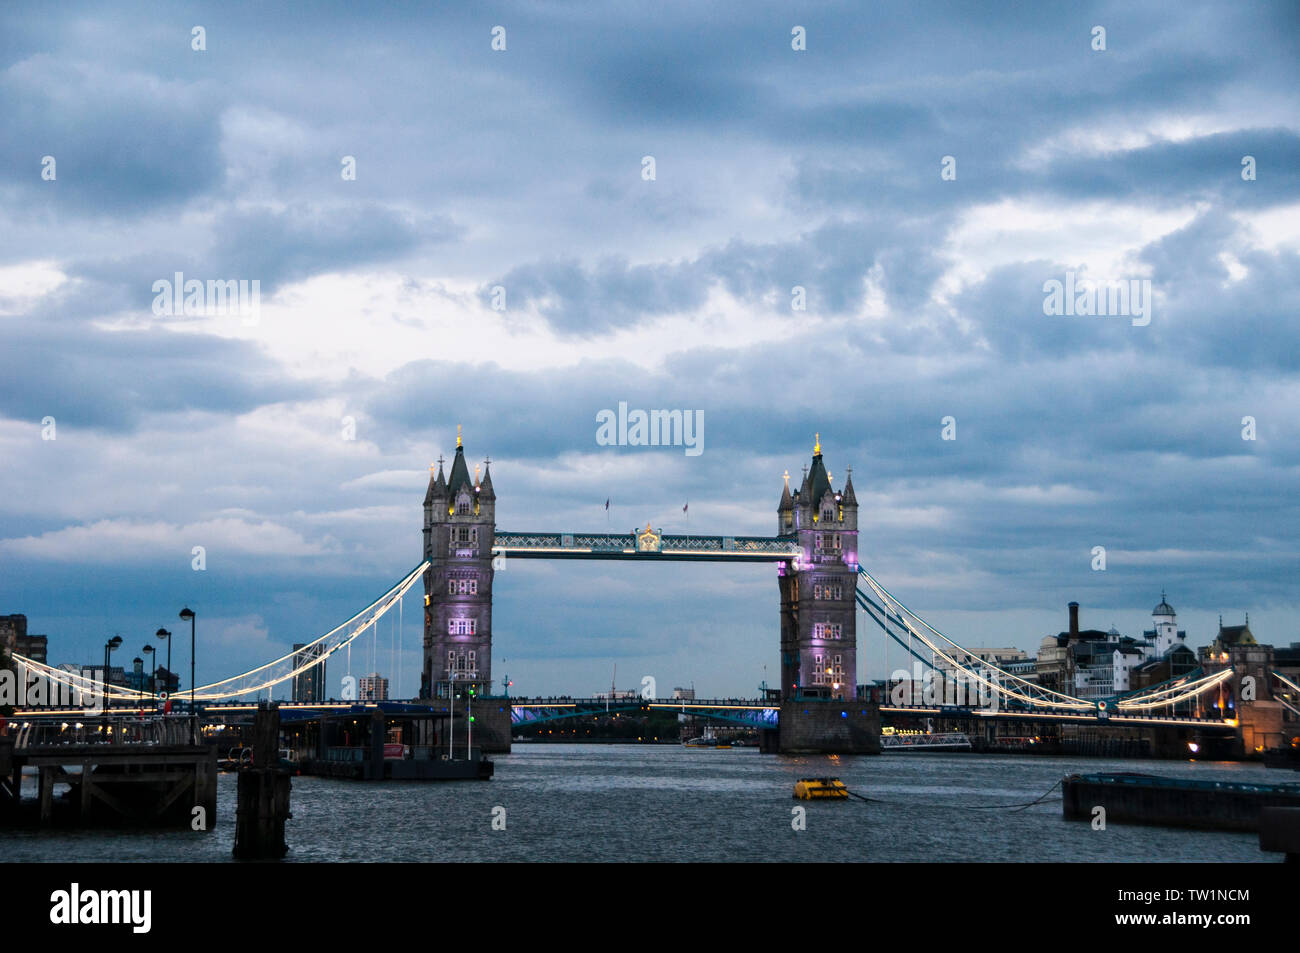 Evening comes to London Bridge Stock Photo